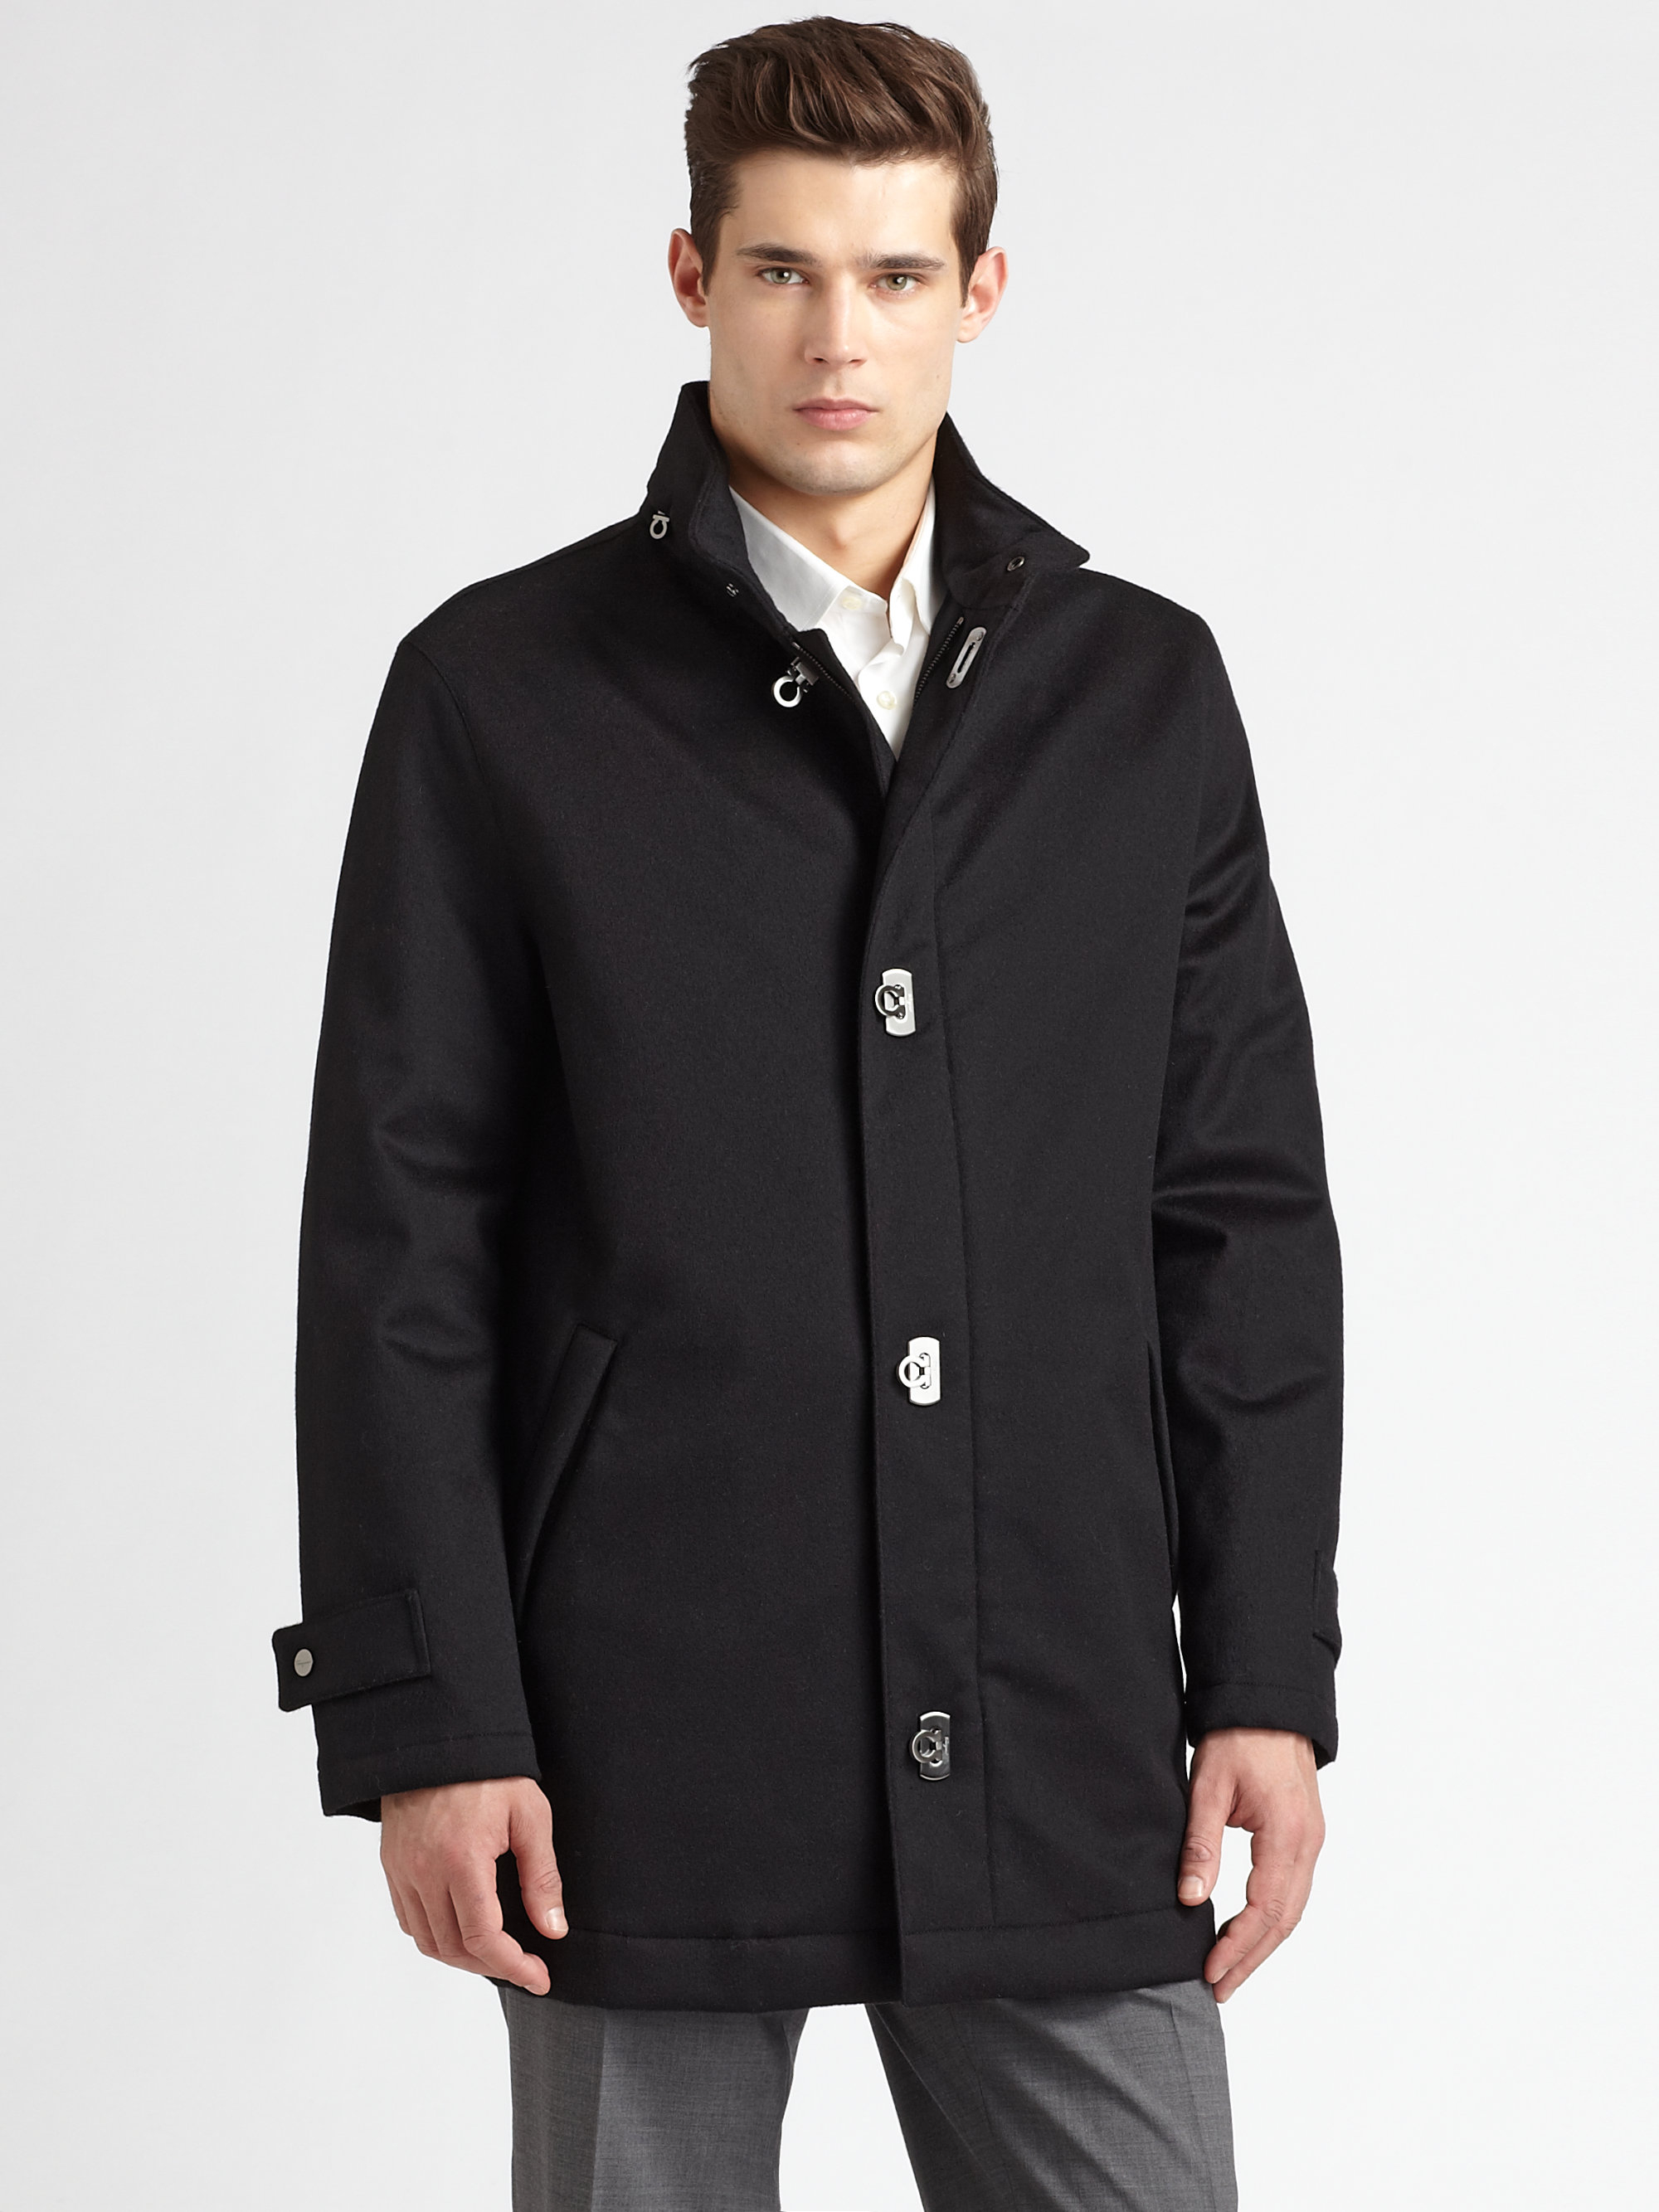 Ferragamo Wool/cashmere Car Coat in Black for Men | Lyst